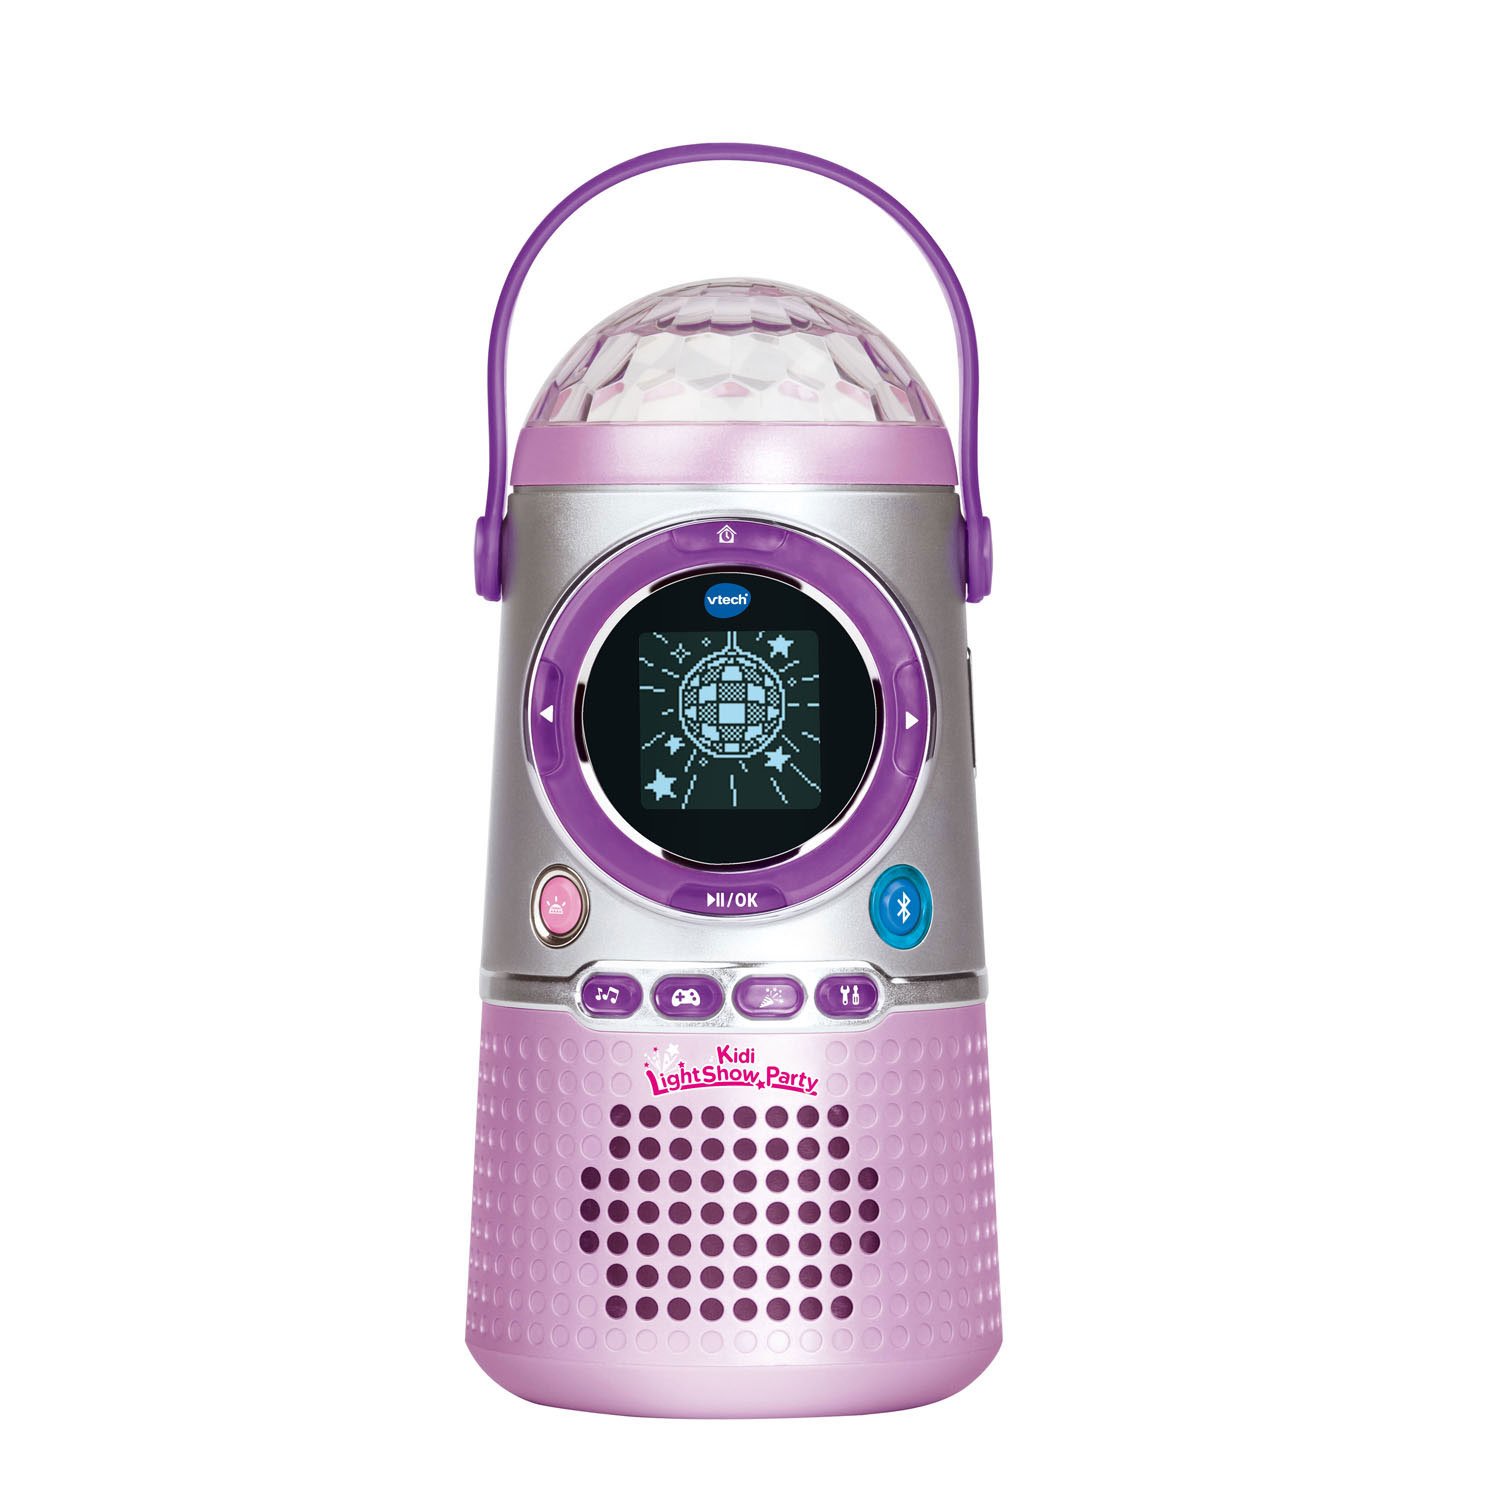 VTech Kidi Lightshow Party Speaker